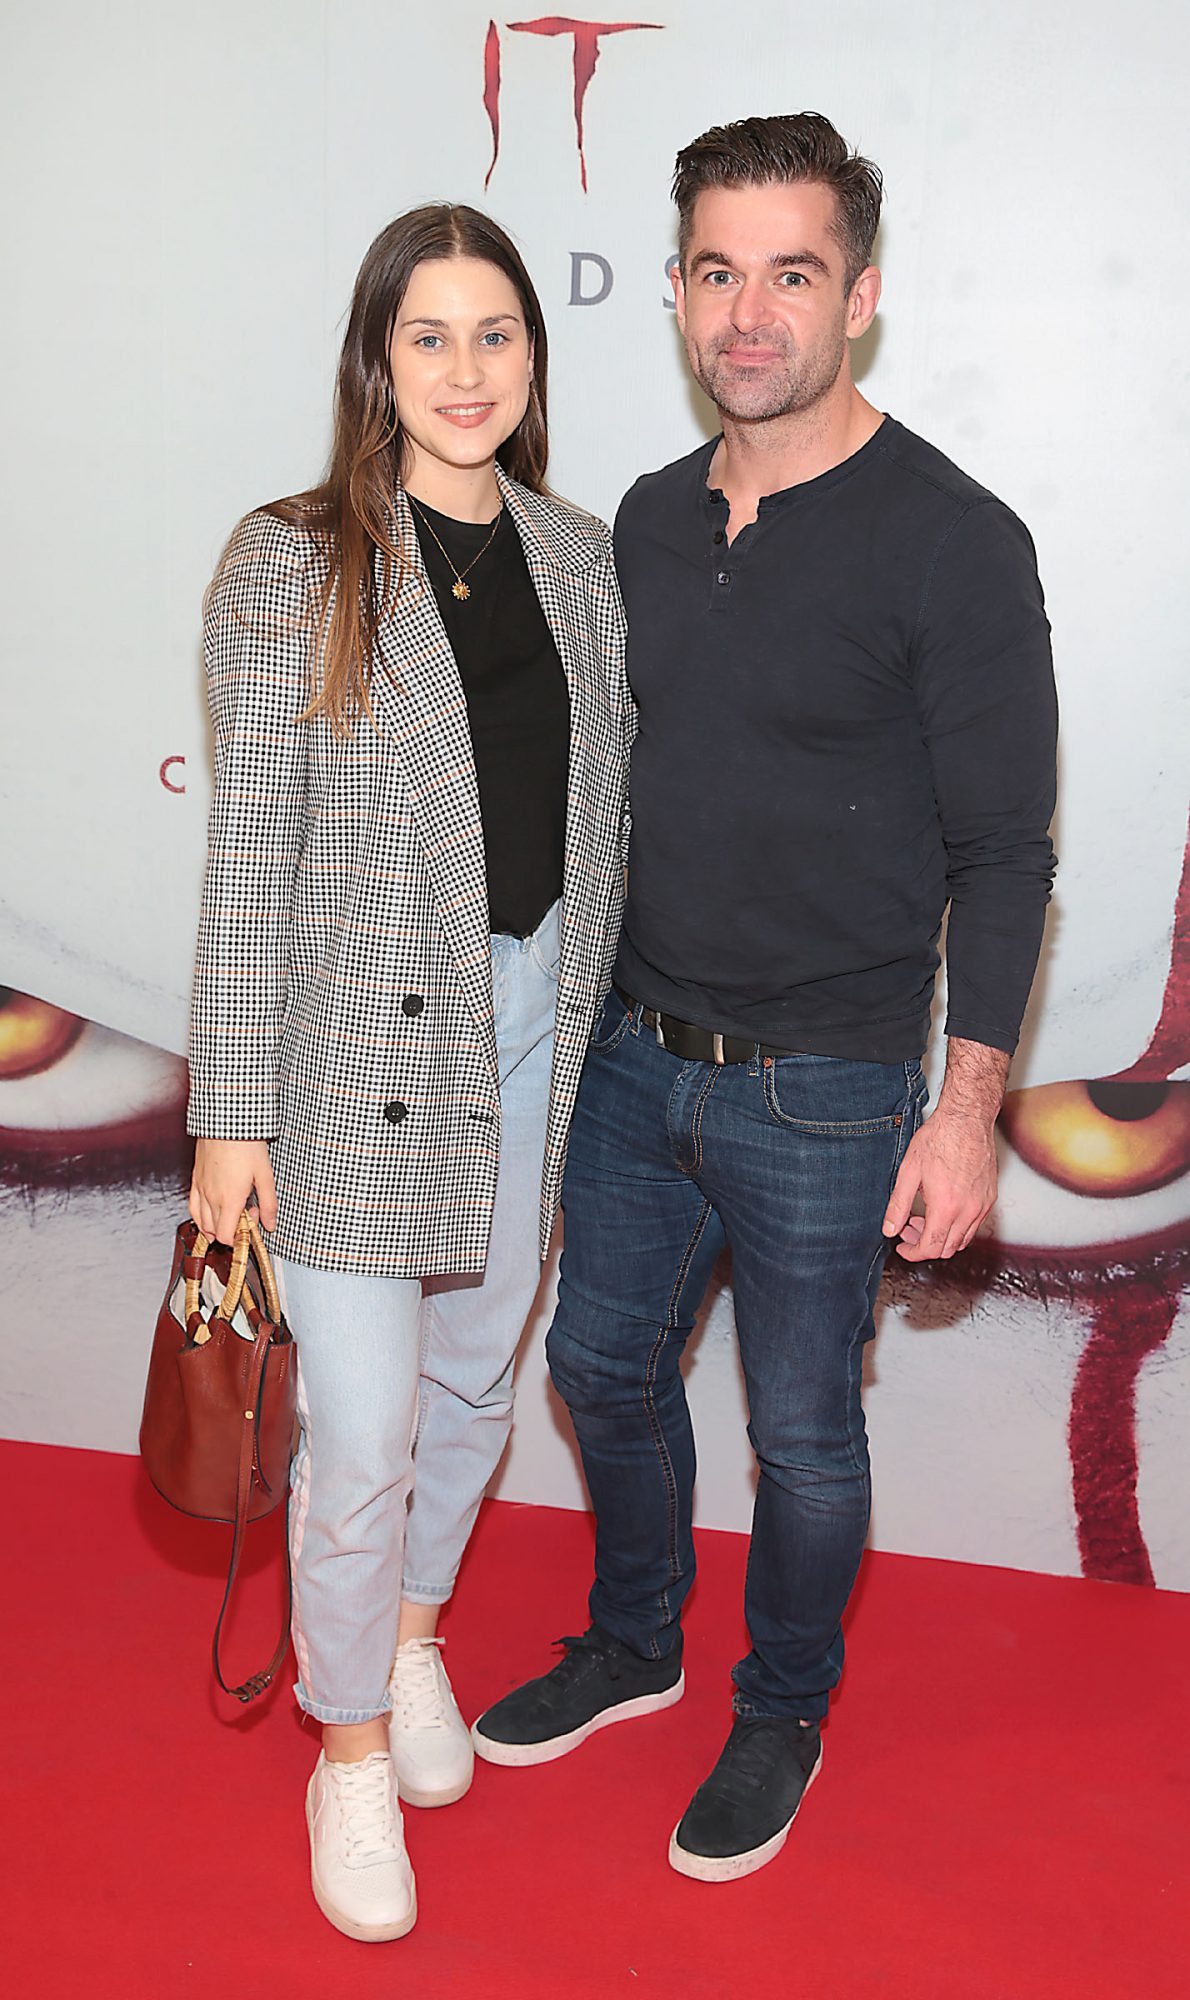 Jo Linehan and Mike Sheridan at the Irish premiere of IT Chapter 2 at the Odeon Cinema in Point Square, Dublin. Pic: Brian McEvoy.